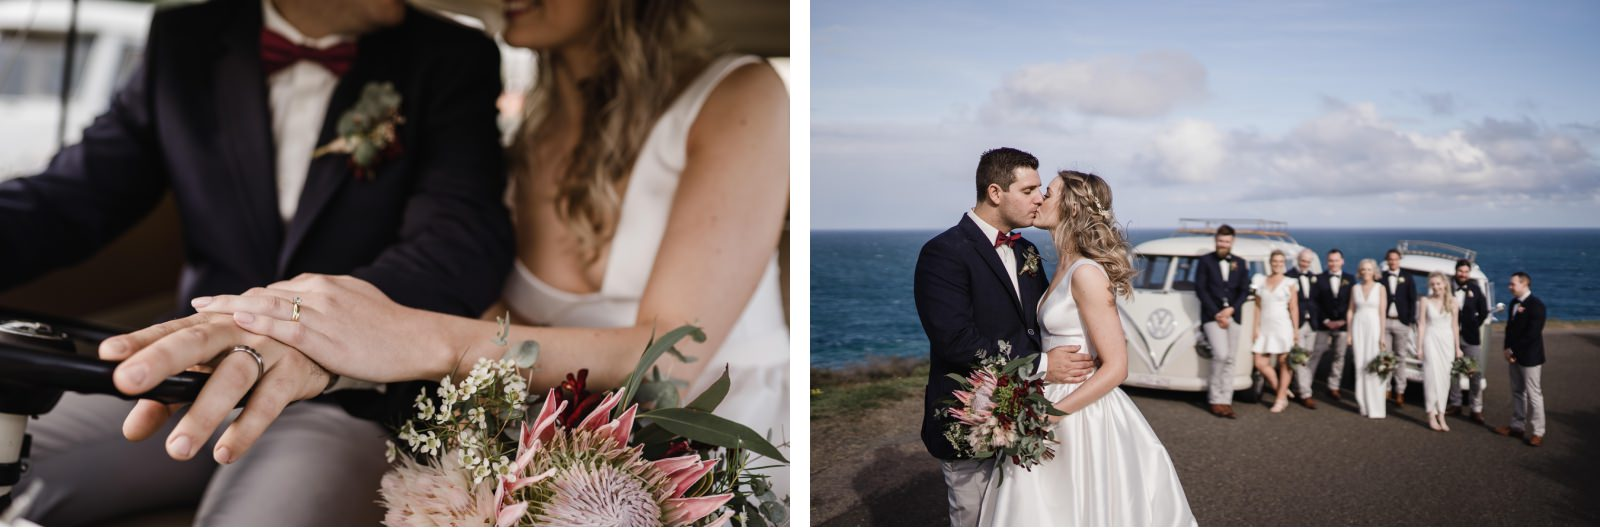 newcastle-wedding-photographer-merewether-surfhouse-kandis-samuel-71.jpg